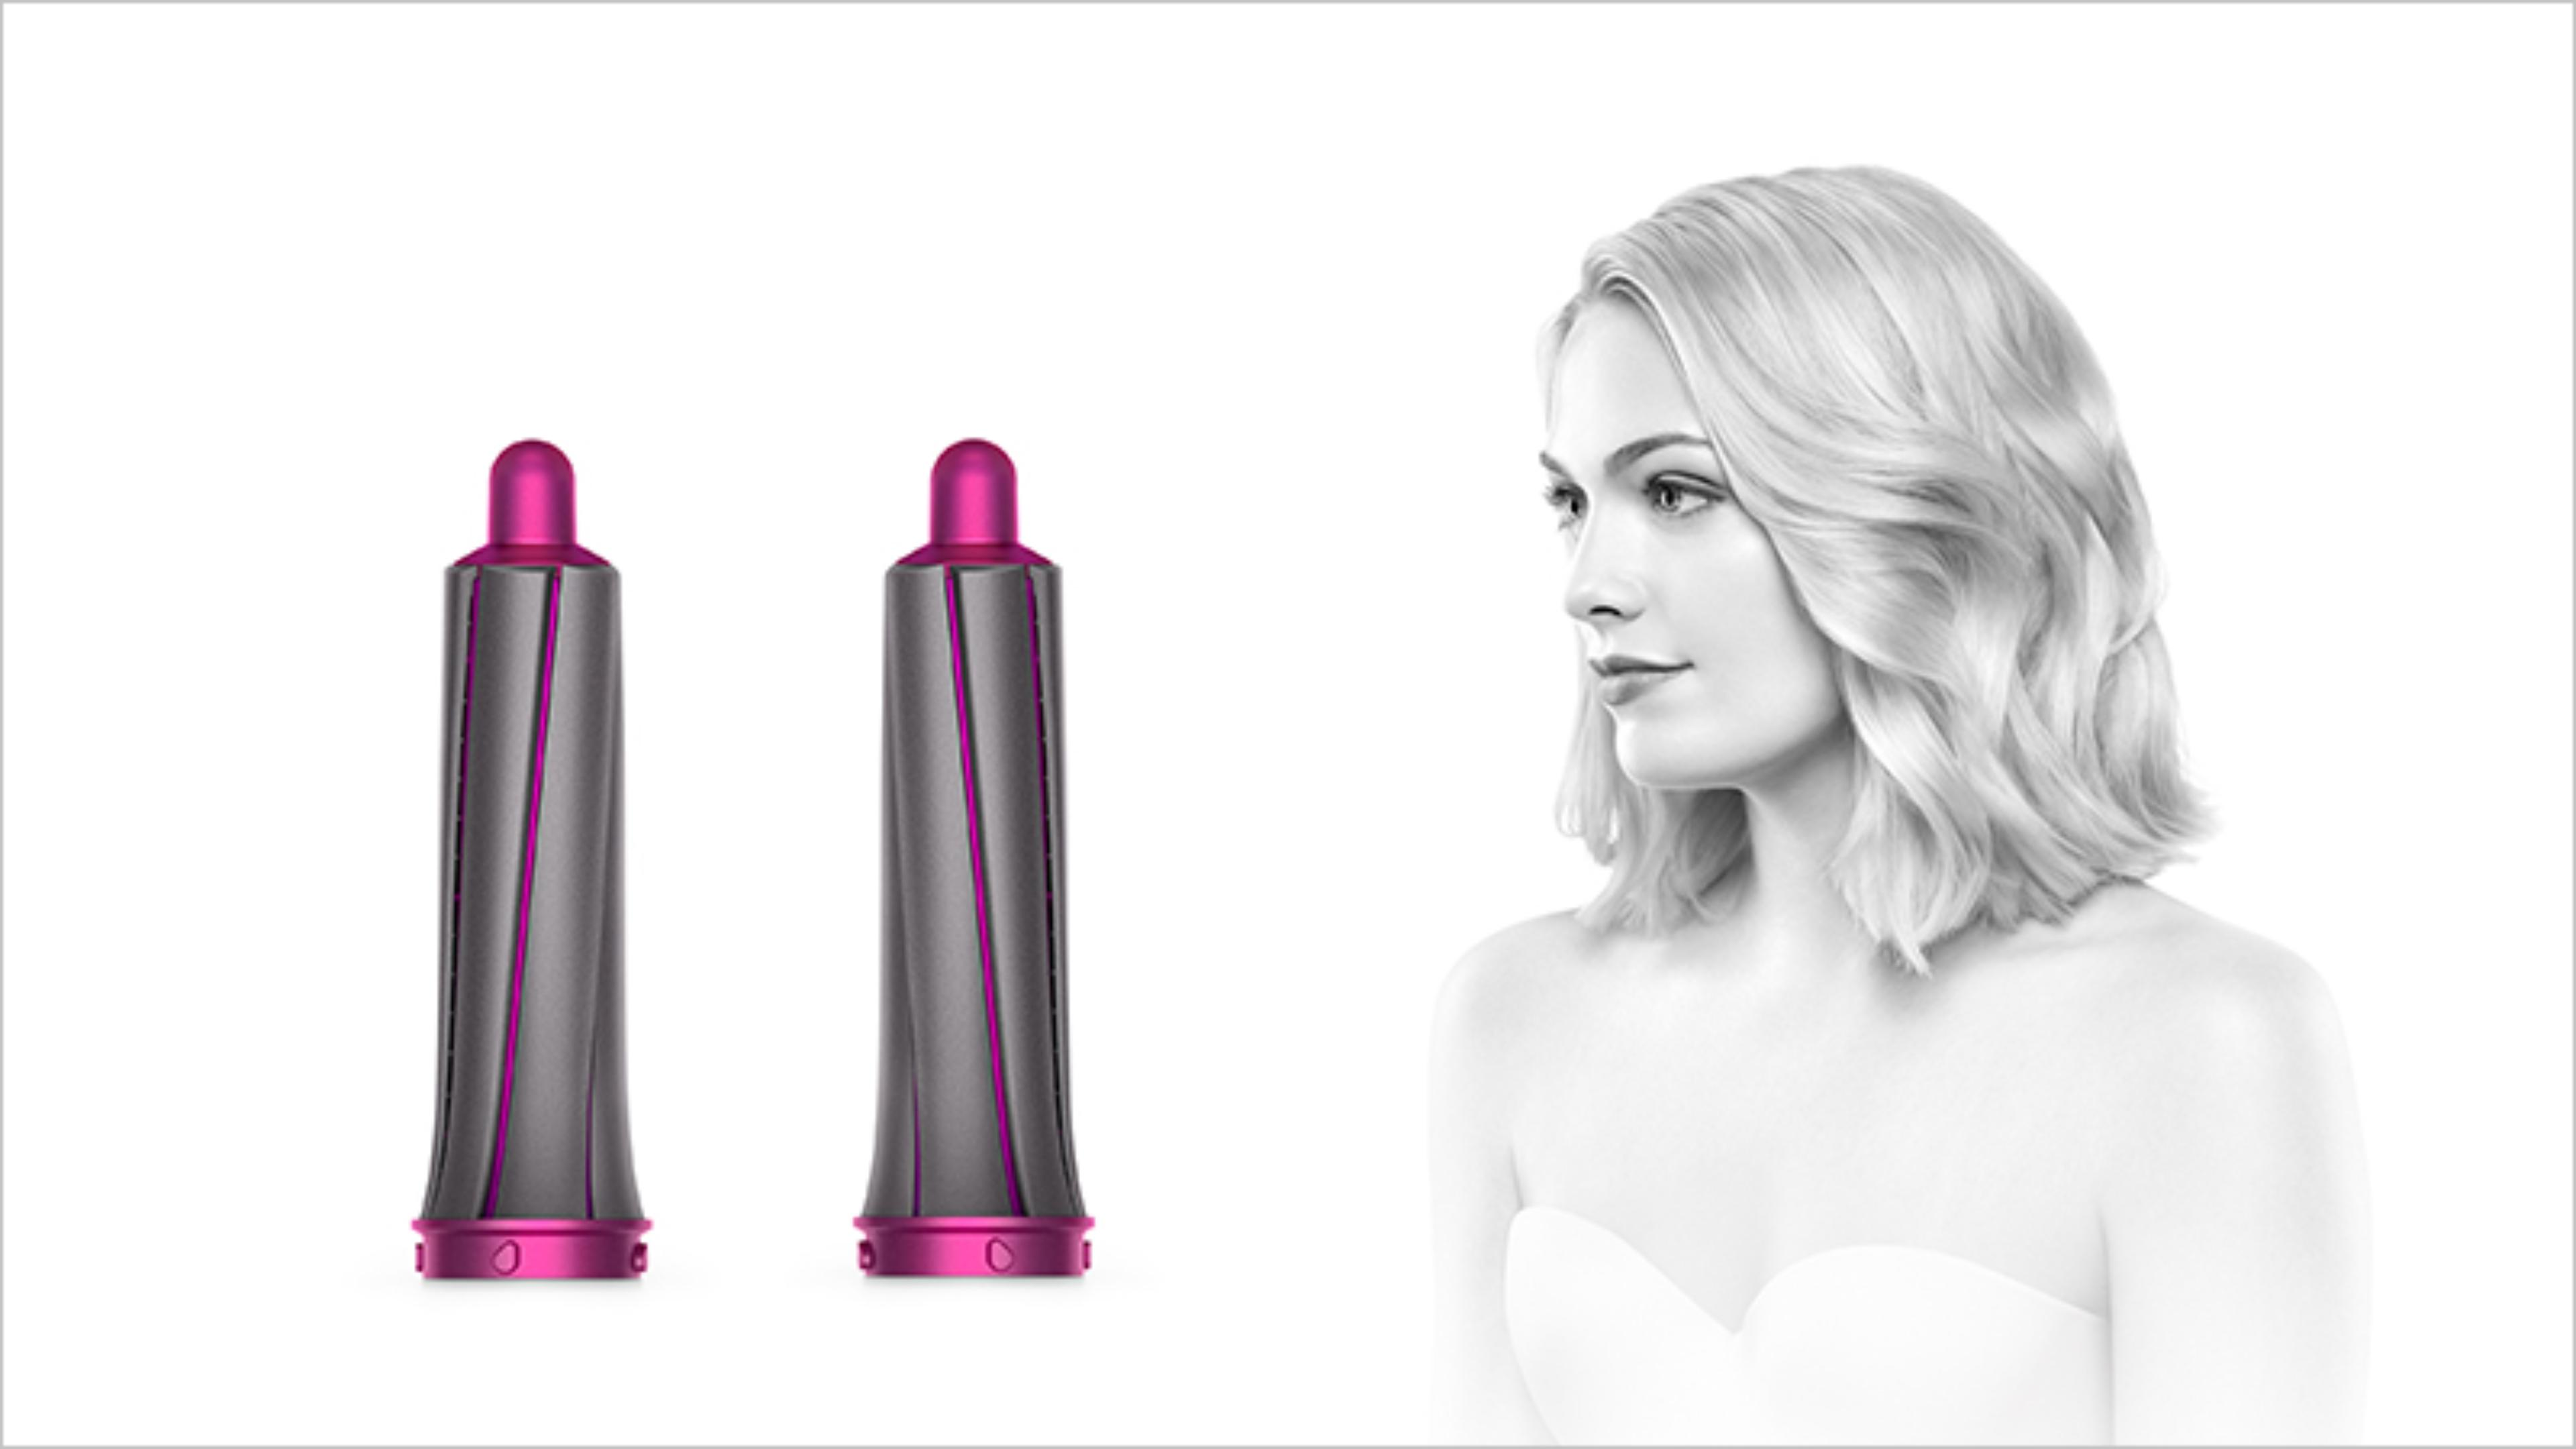 30mm Airwrap barrels with curly haired model